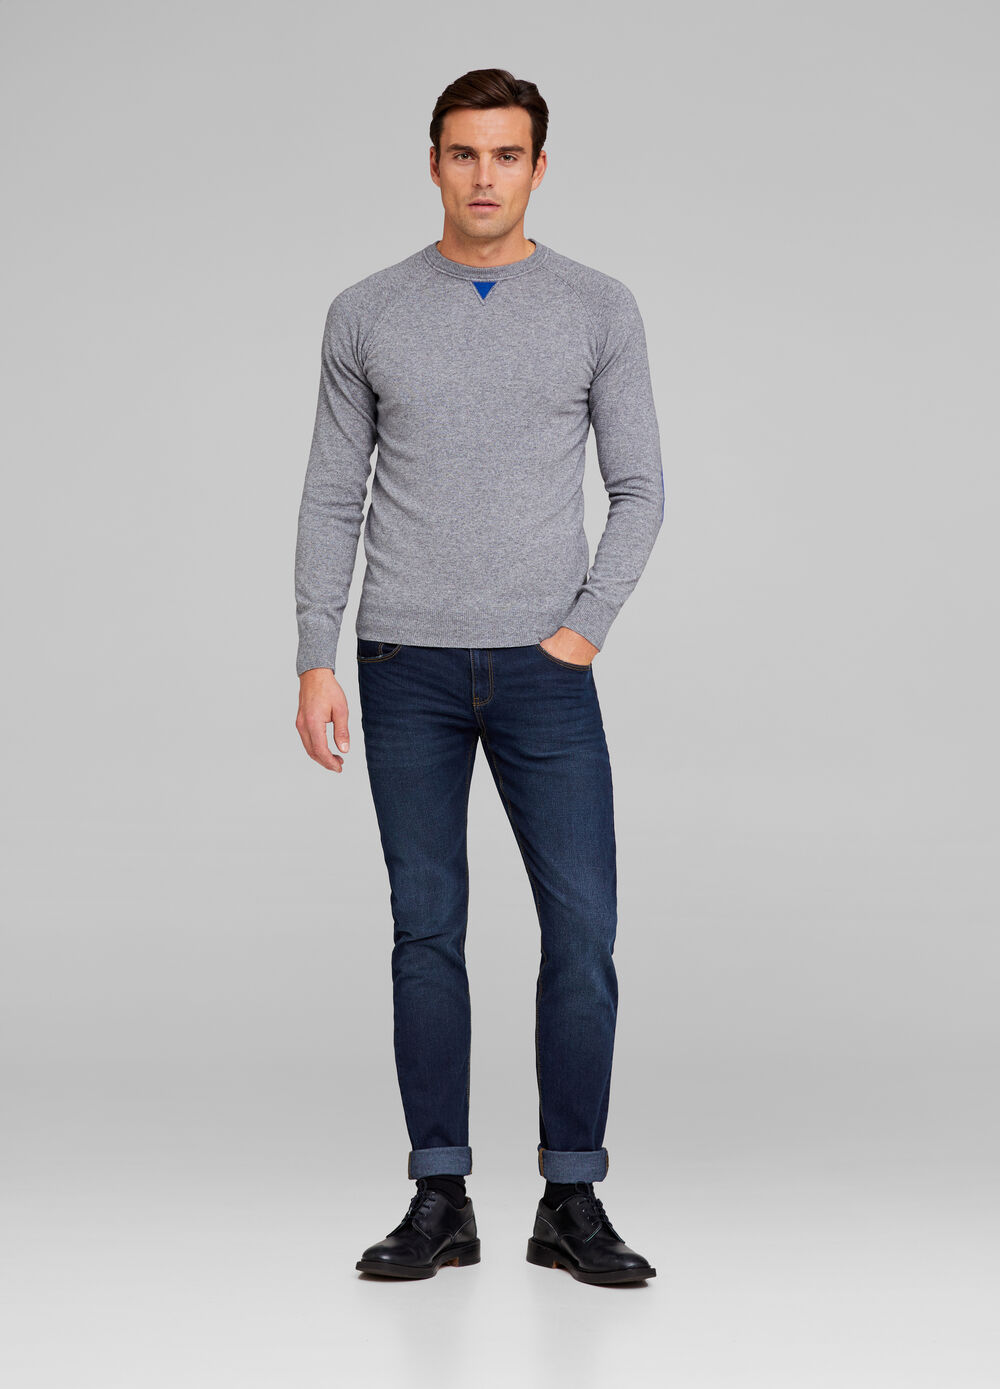 Tencel and wool blend pullover with patch